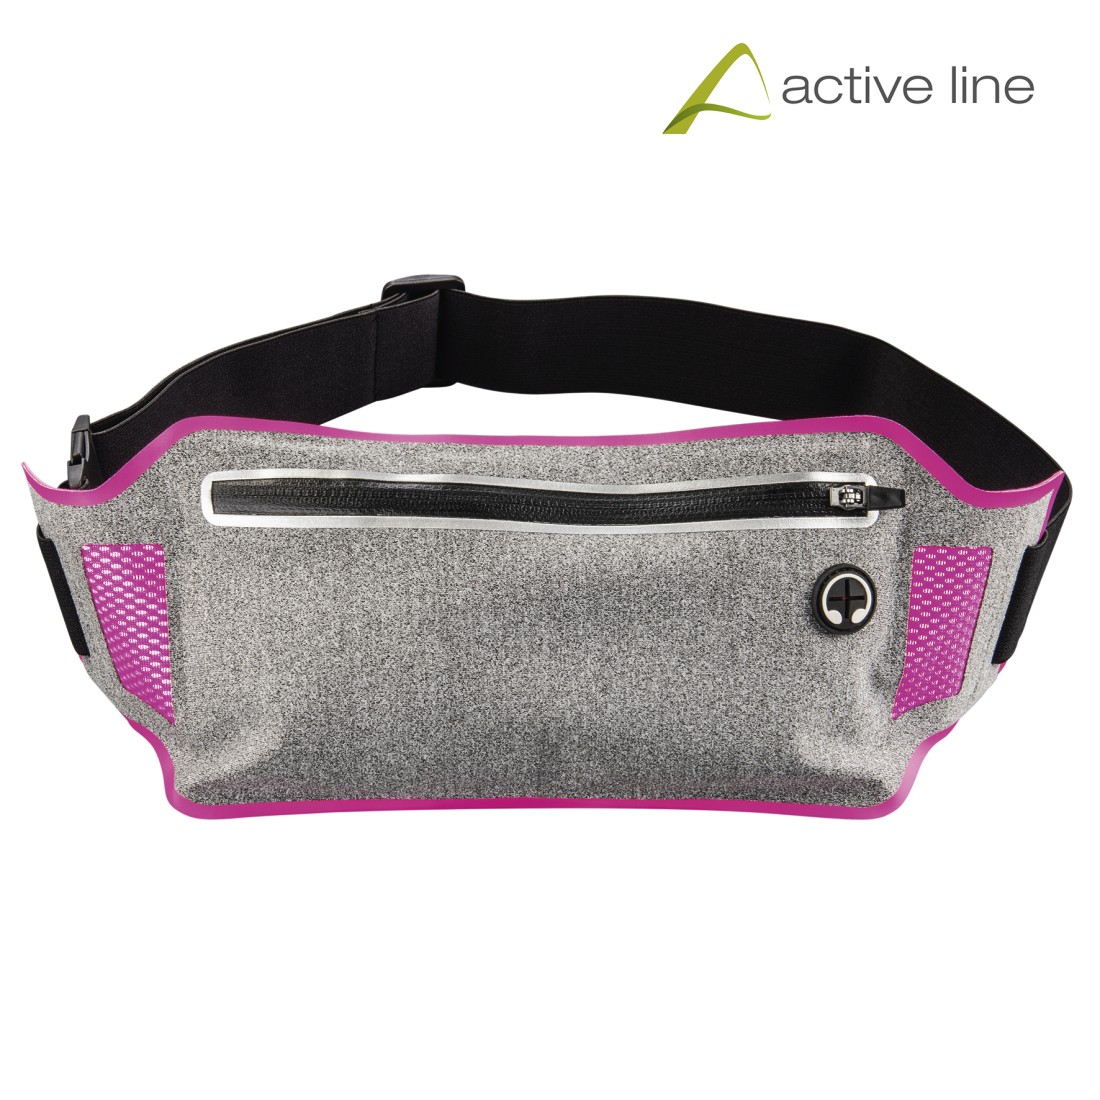 uax Printable Image Logo - Hama, Running Sports Hip Pouch for Smartphones, grey/pink